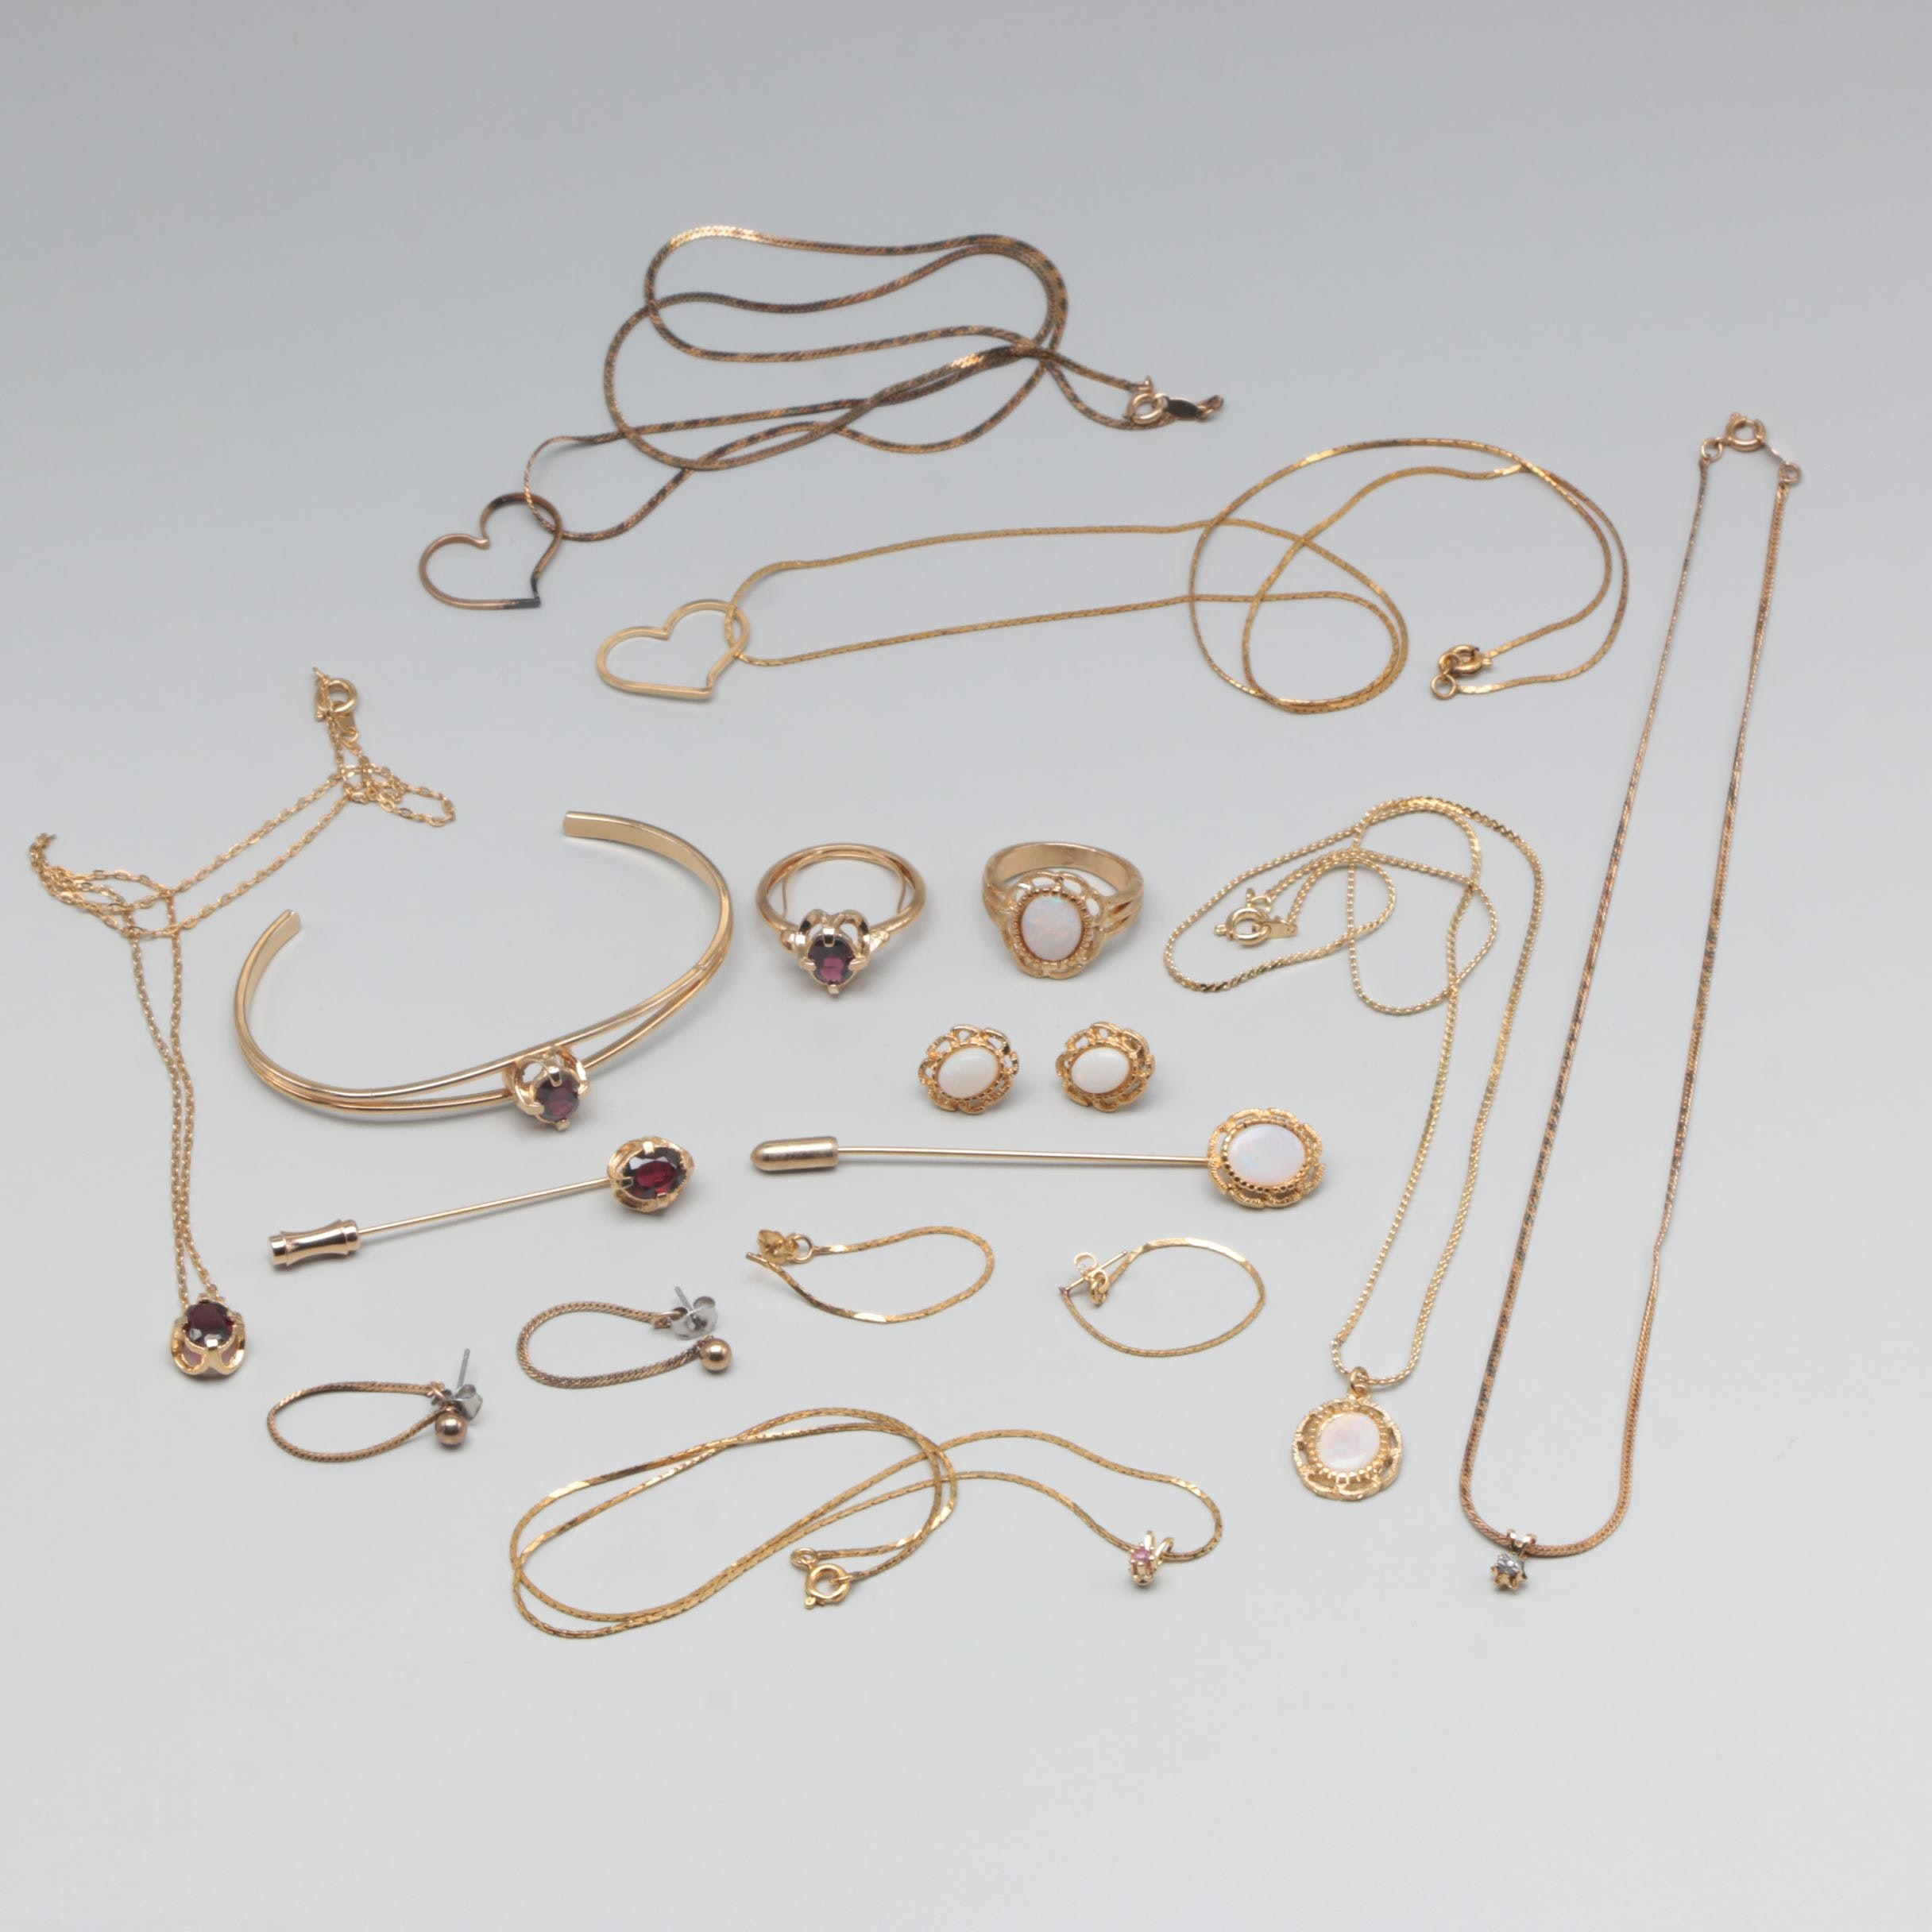 Gold Tone Jewelry Assortment Including Garnet and Opal